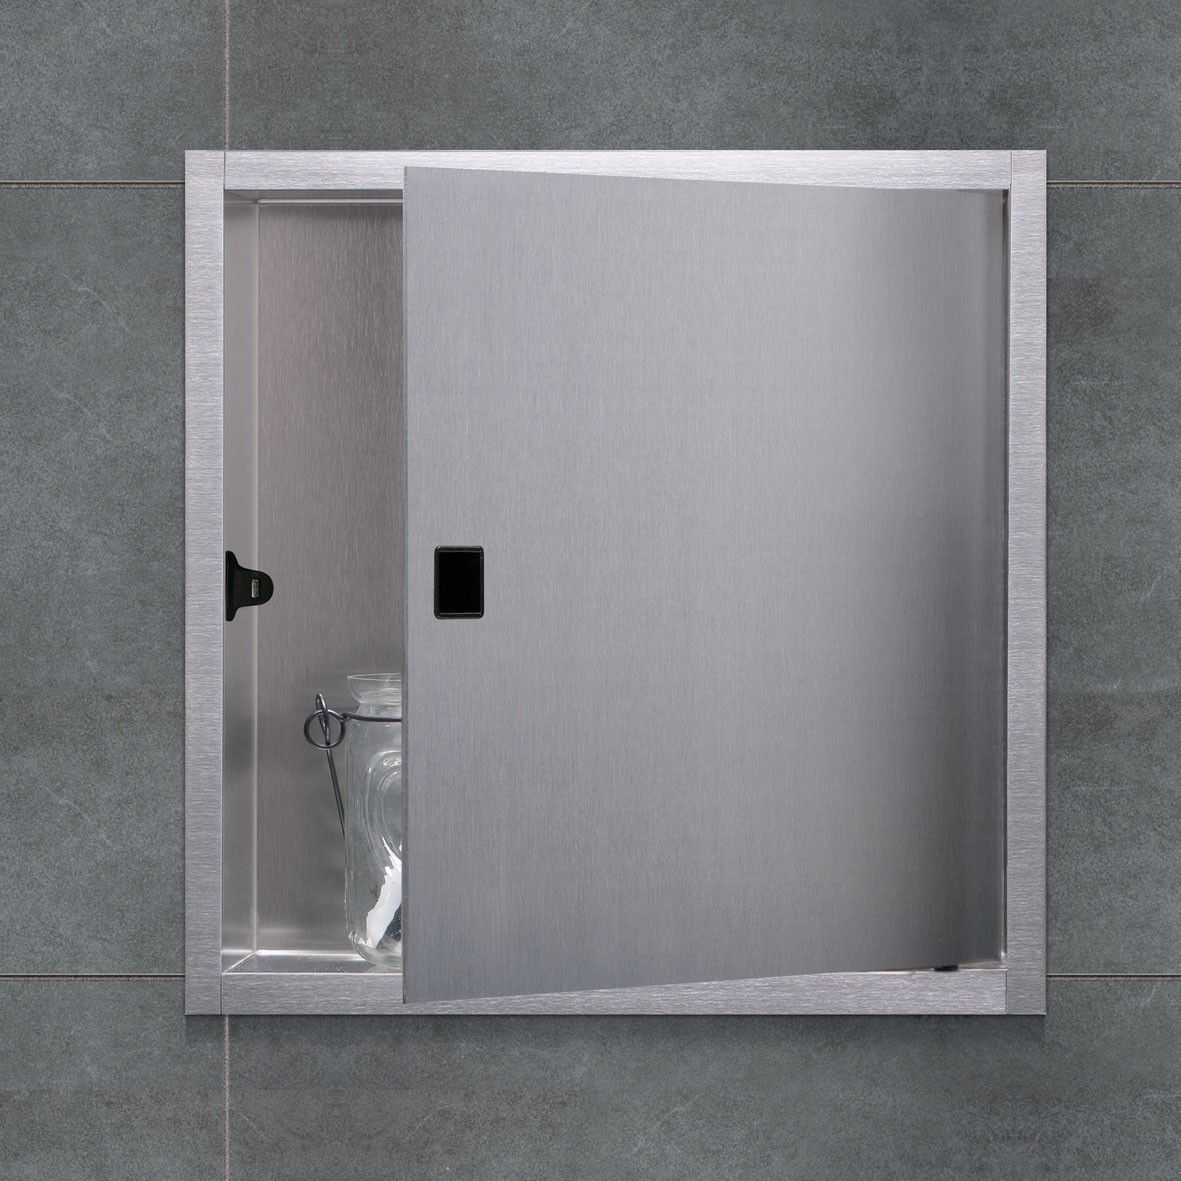 Contemporary Bathroom Cabinet Stainless Steel Wall Mounted